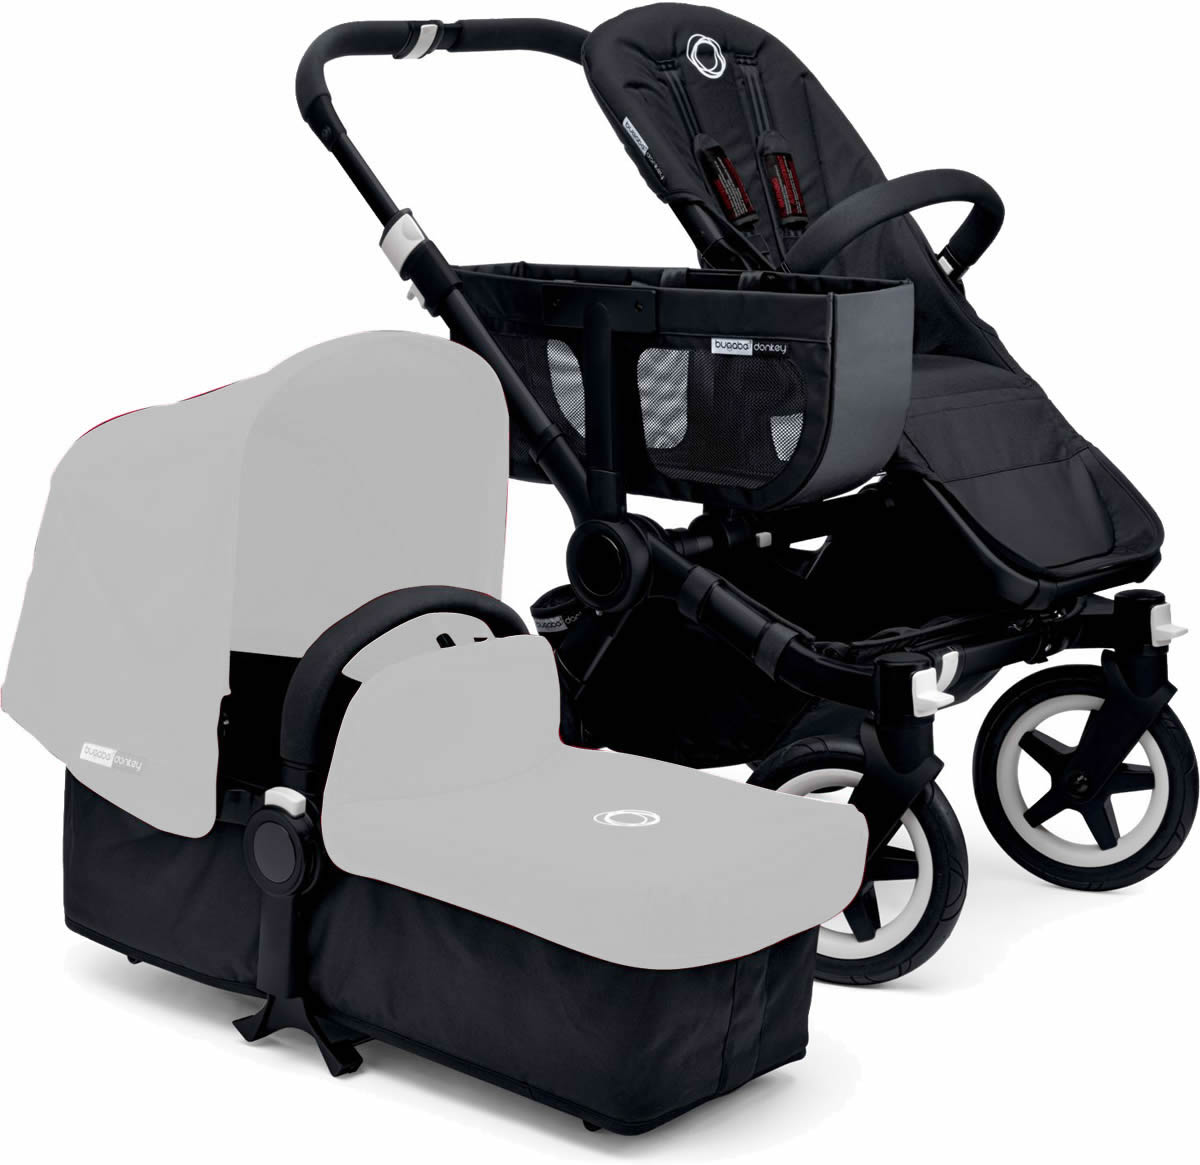 Bugaboo Donkey Stroller Base - All Black